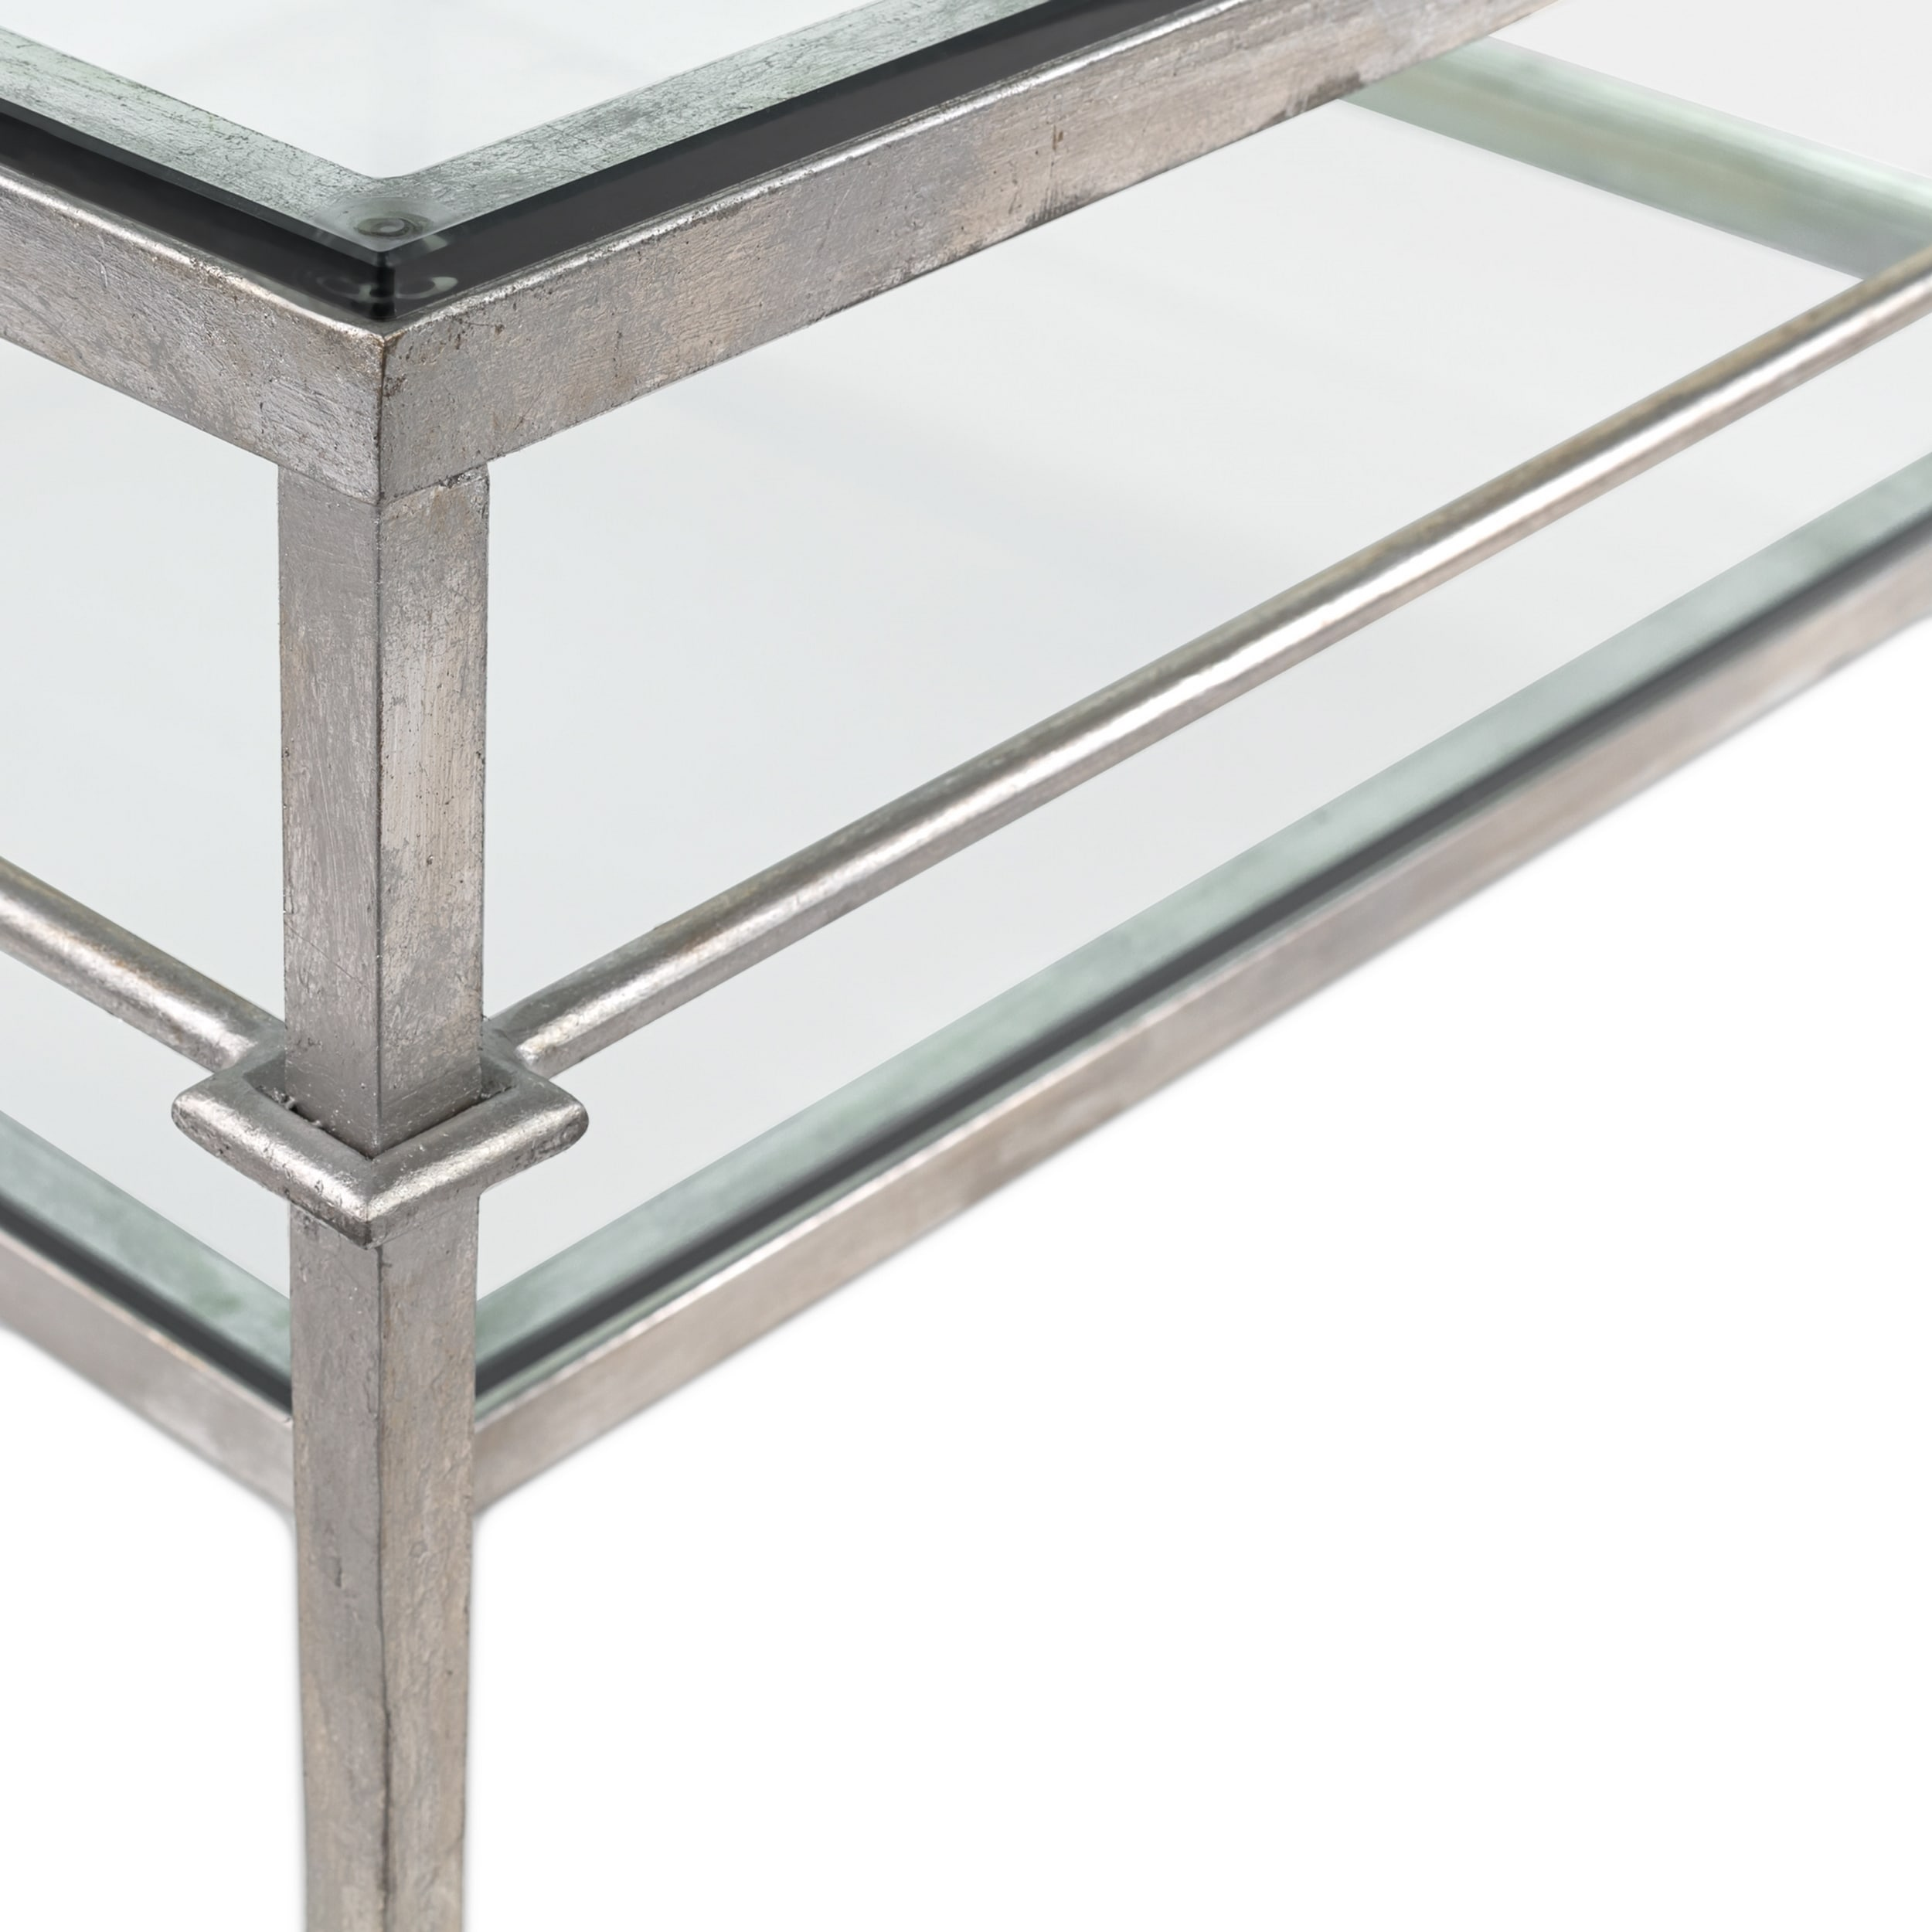 Safavieh Couture High Line Collection Mieka Silver Leaf Tail Table On Free Shipping Today 11188658